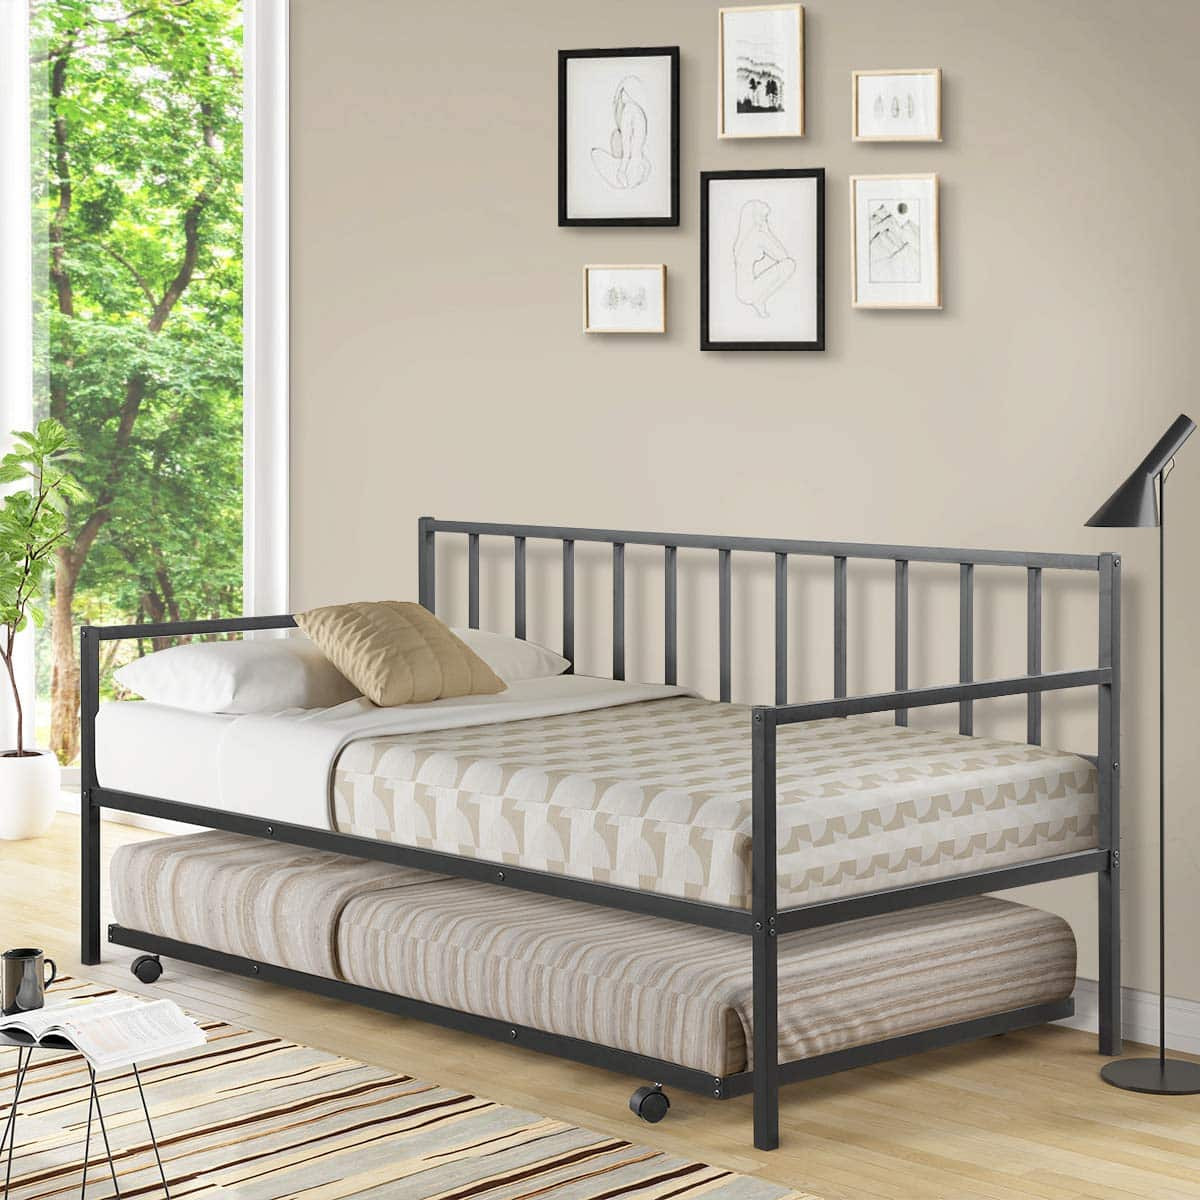 Giantex Trundle Bed with Four Castors